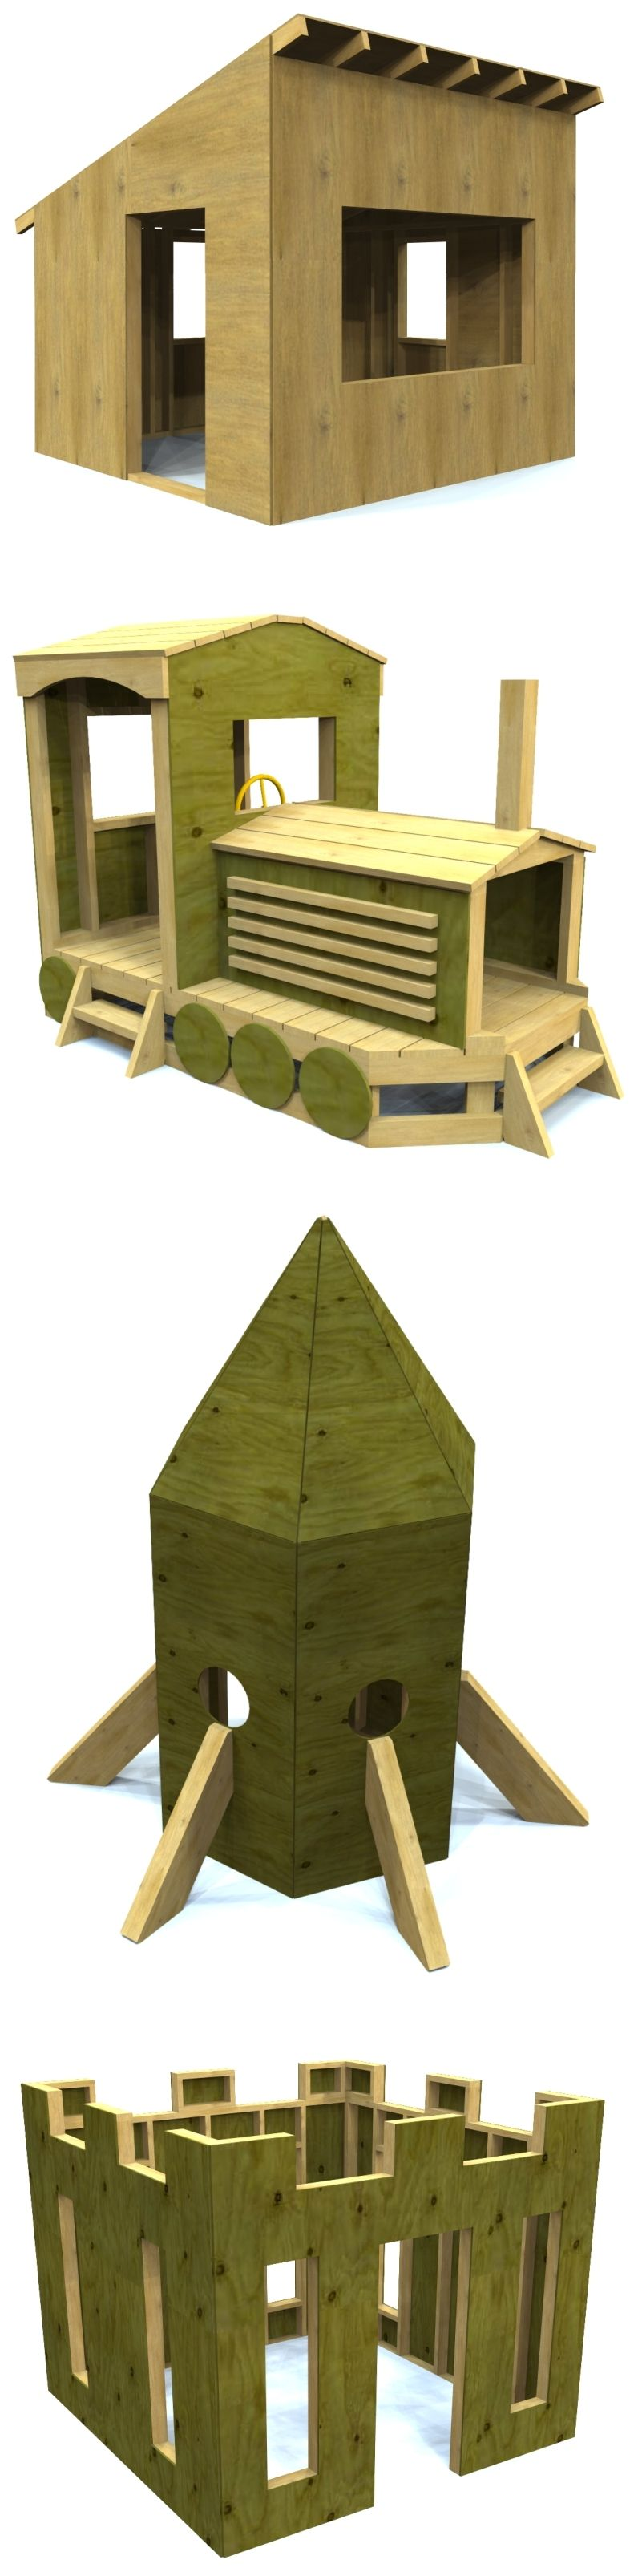 12 free playhouse plans you can build perfect for any diyer who